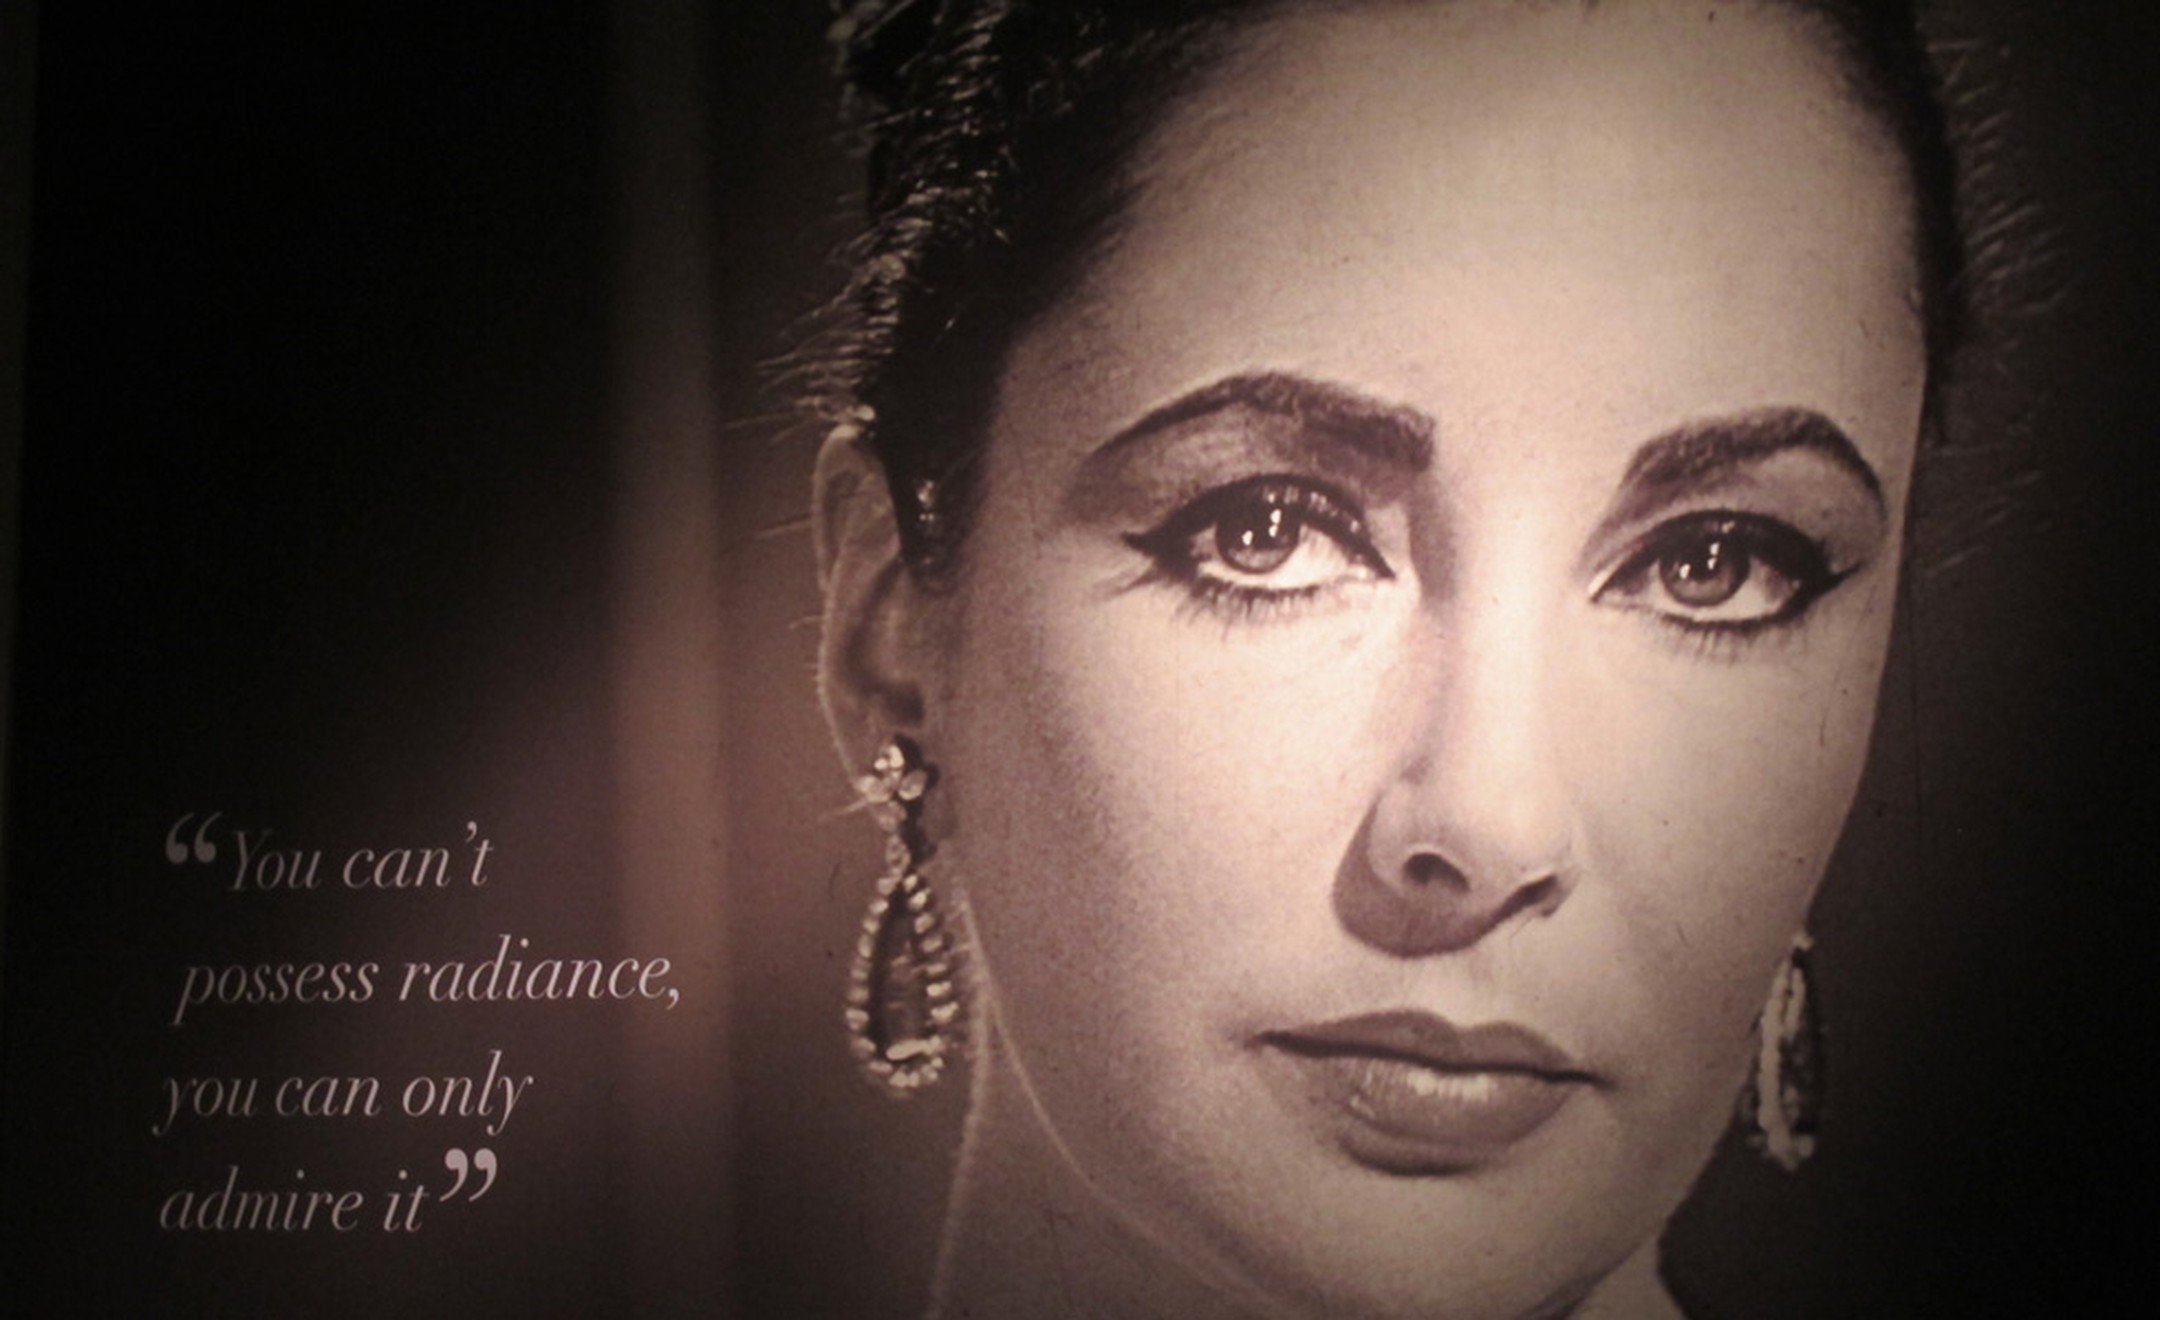 Poster of Elizabeth Taylor at the Christie's exhibition of her jewels, art and couture that is touring the world before the December sale in New York.